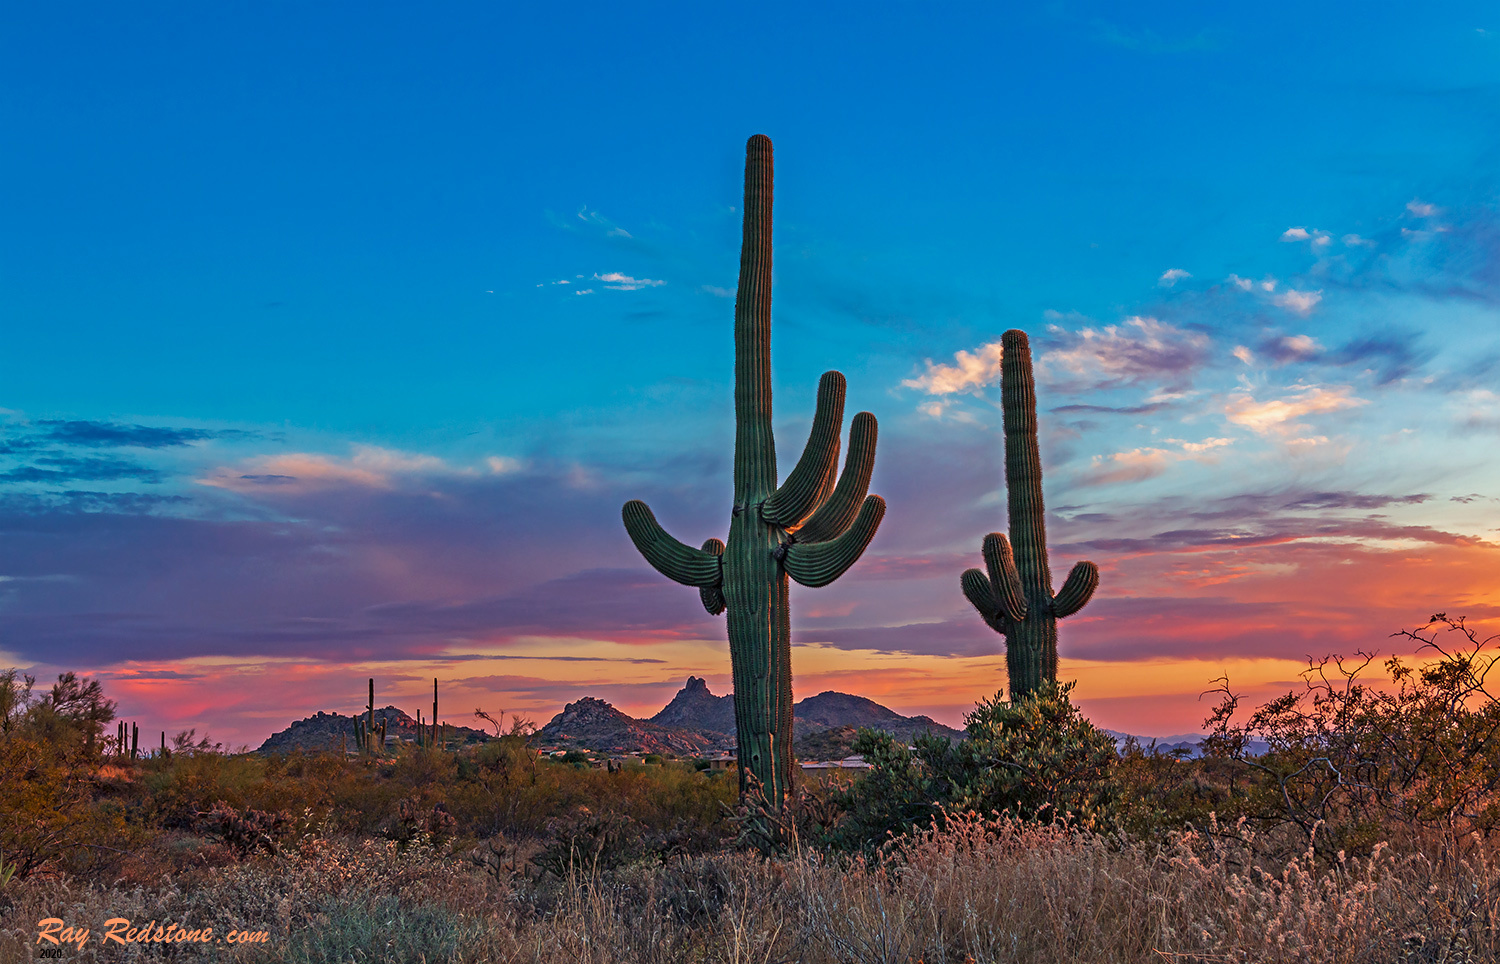 Vibrant AZ Desert Sunset Skies With Cactus by Ray Redstone